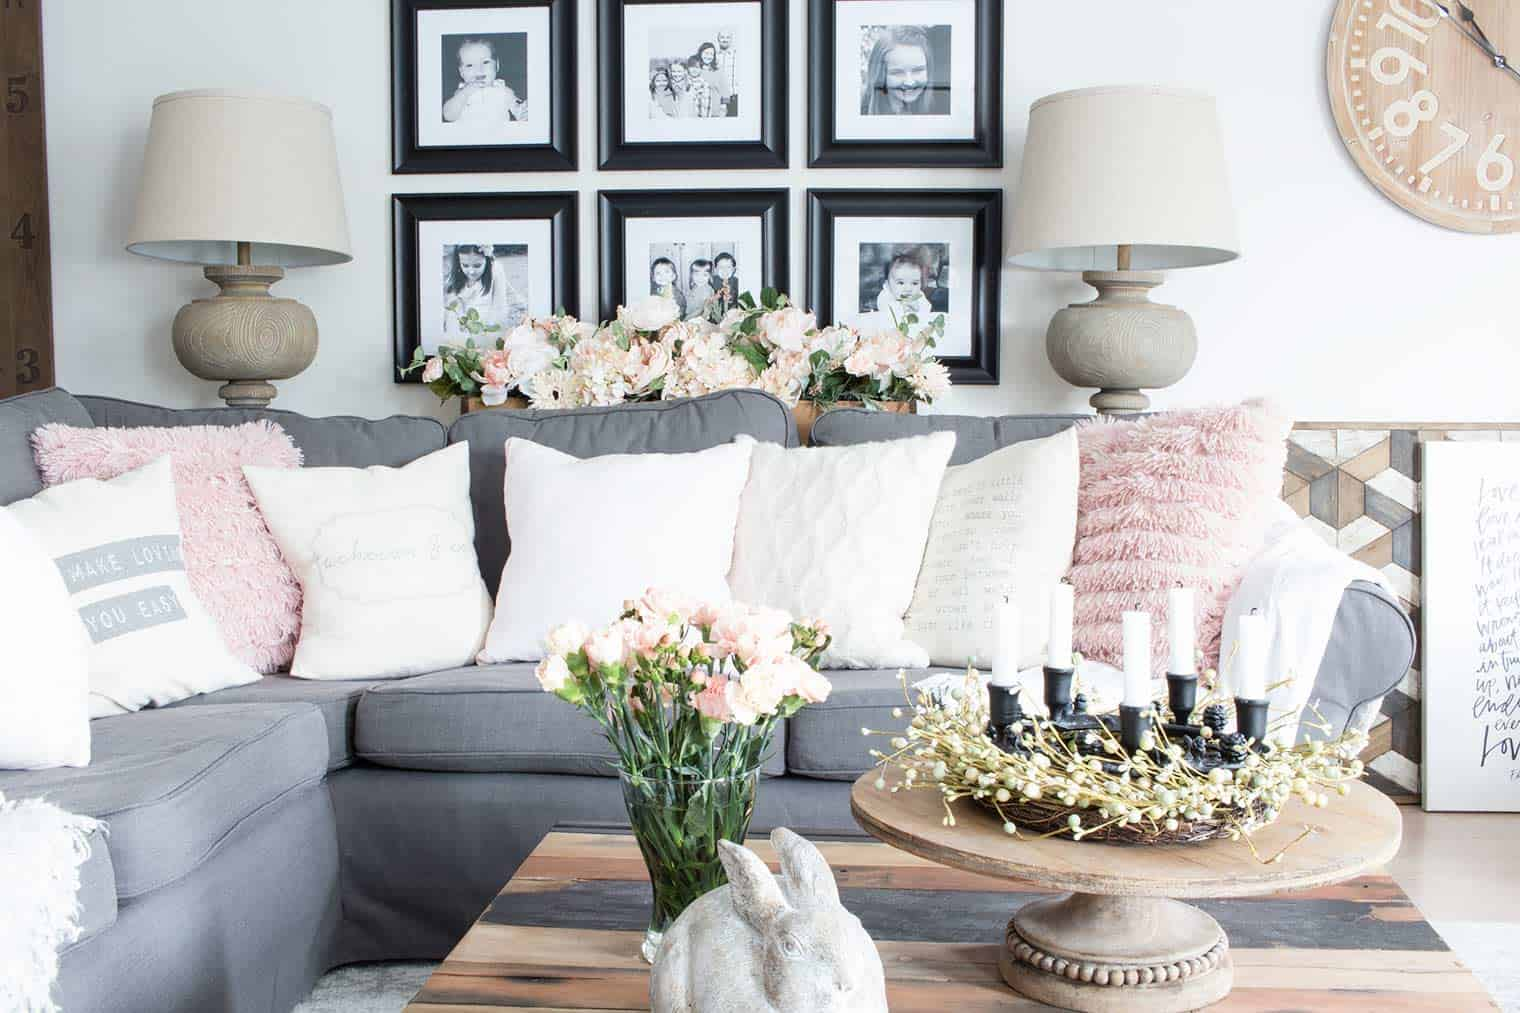 grey sectional, black framed photos on gallery wall, spring flowers in living room